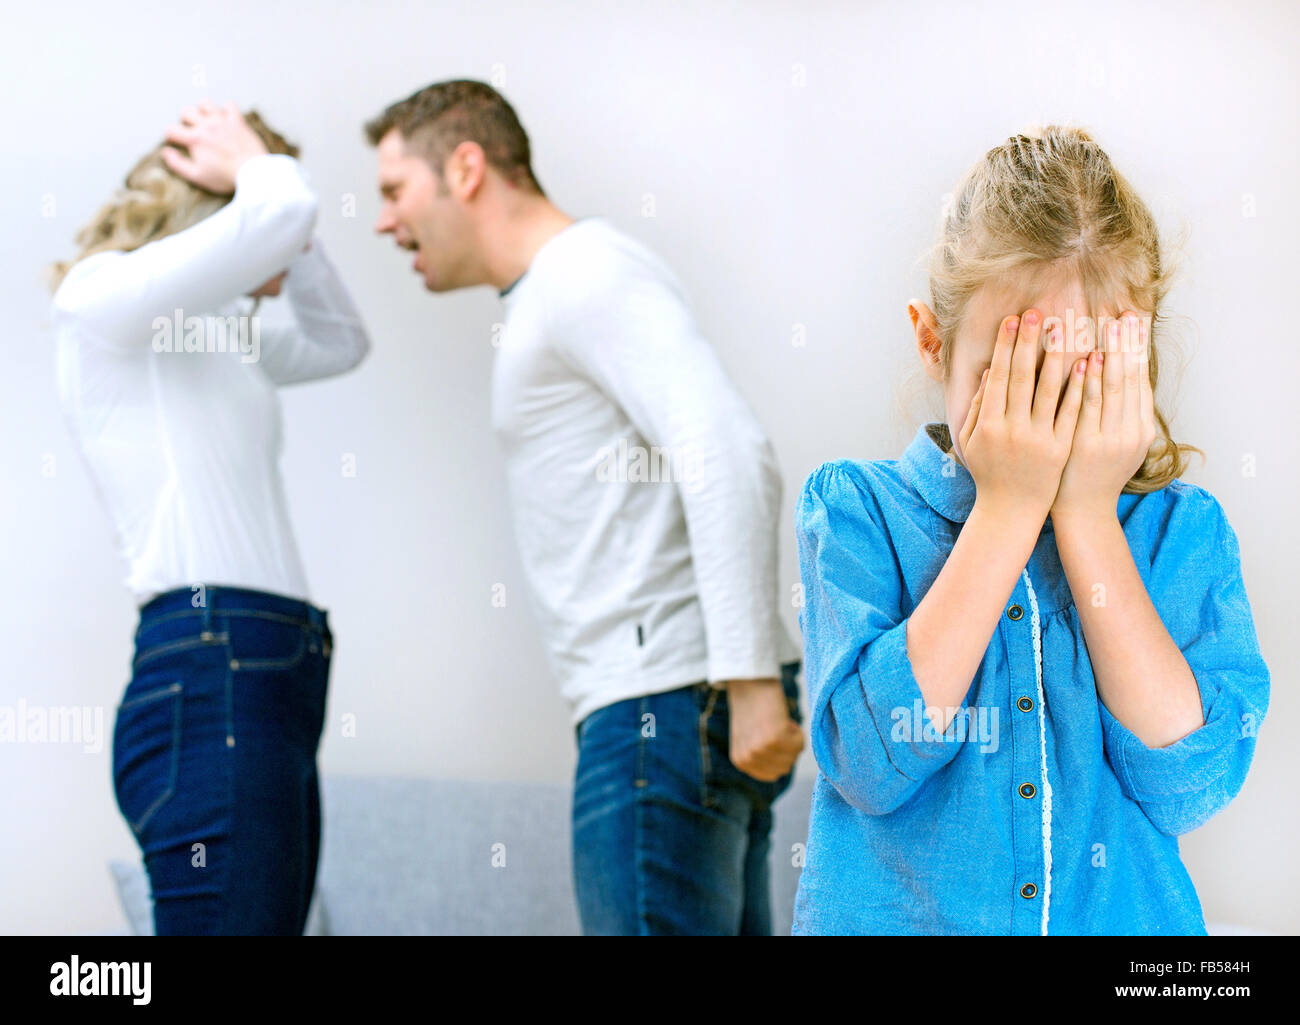 Parents quarreling at home, child in shock. - Stock Image